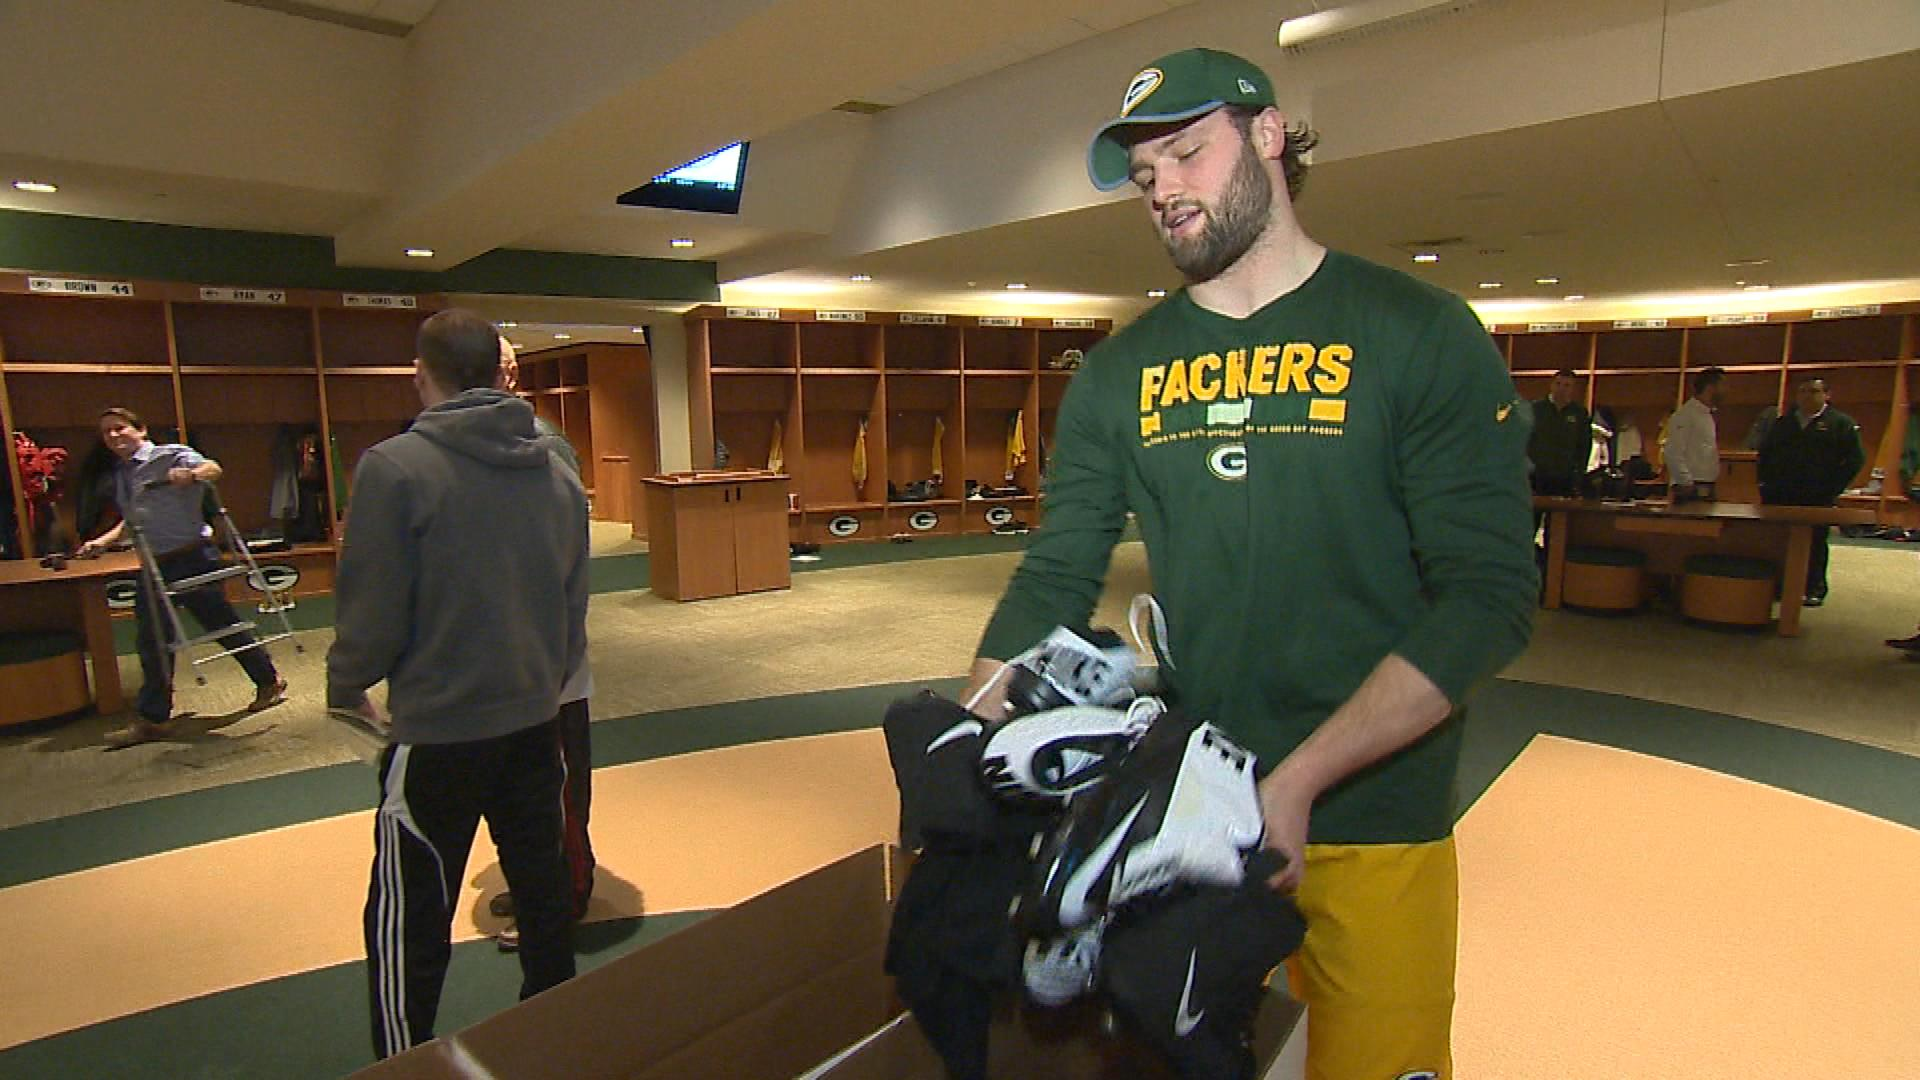 Green Bay Packers linebacker Vince Biegel donates his cleats to charity in the locker room Jan. 2, 2018. (WLUK image)<p></p>